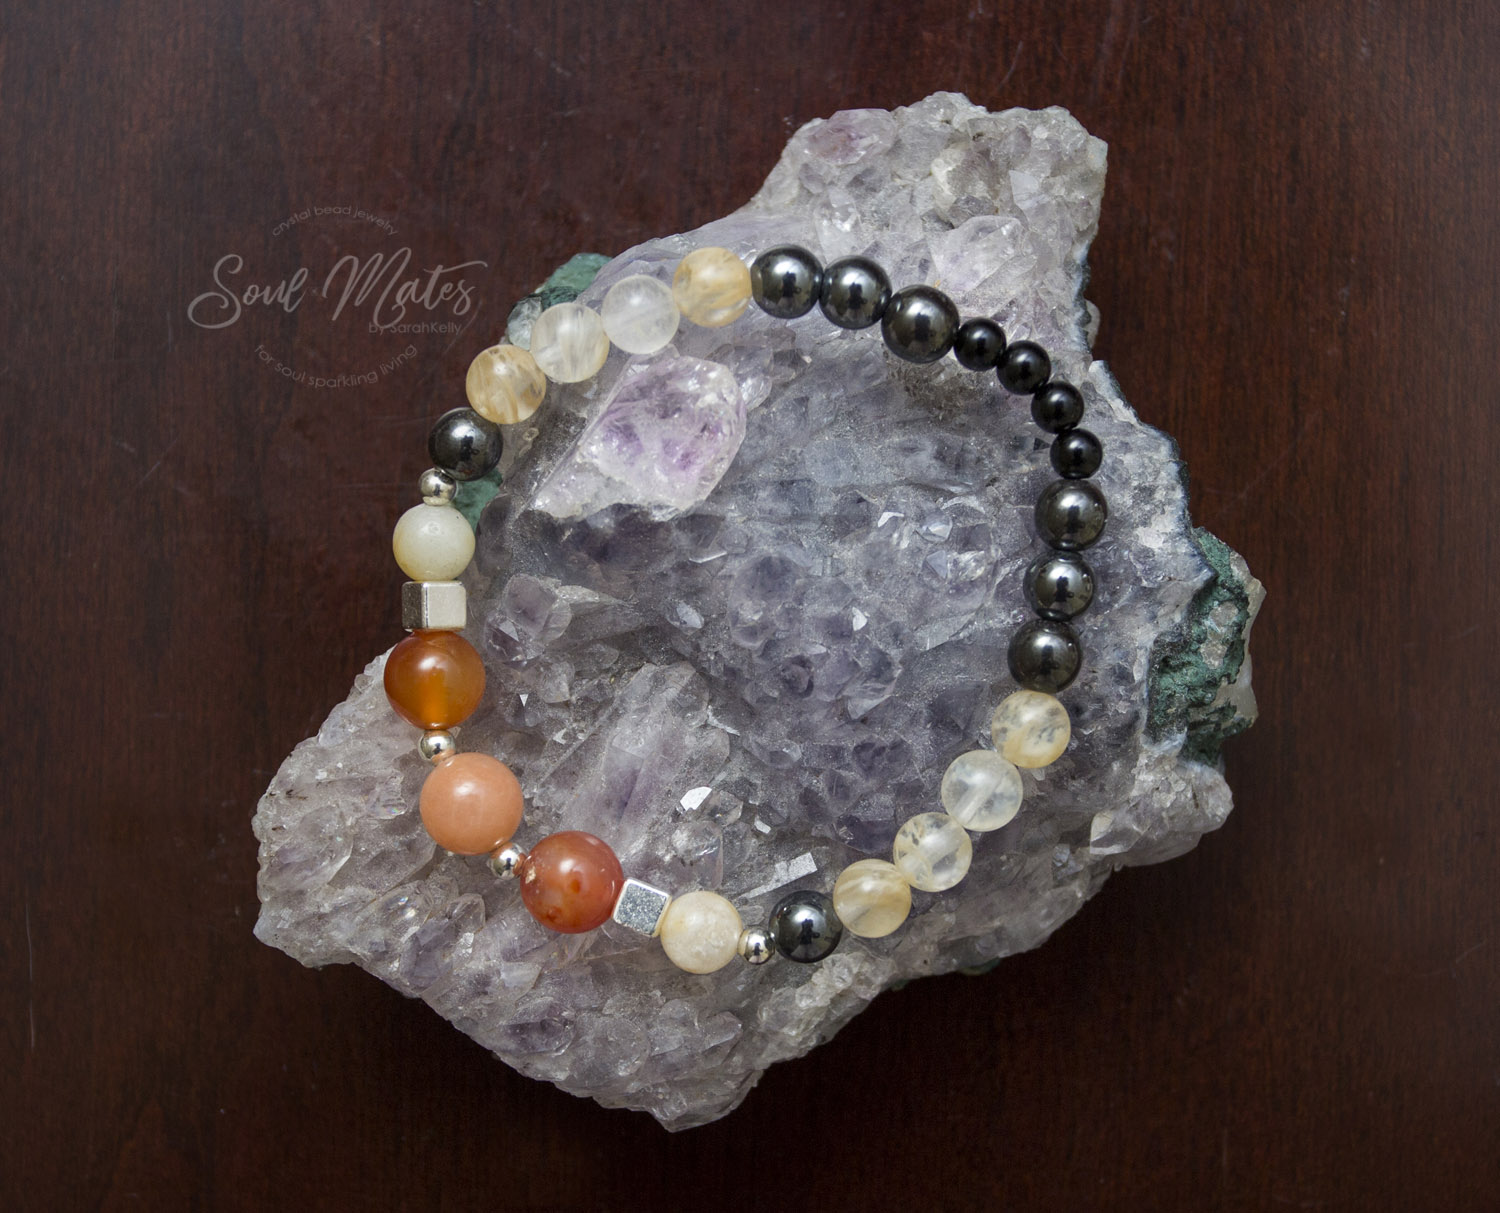 Energizing  - Carnelian, Citrine, grounding Hematite and Onyx for dissolving negativity and restoring peace and harmony in the body. Wealth attracting.  Great for day wear.  $22